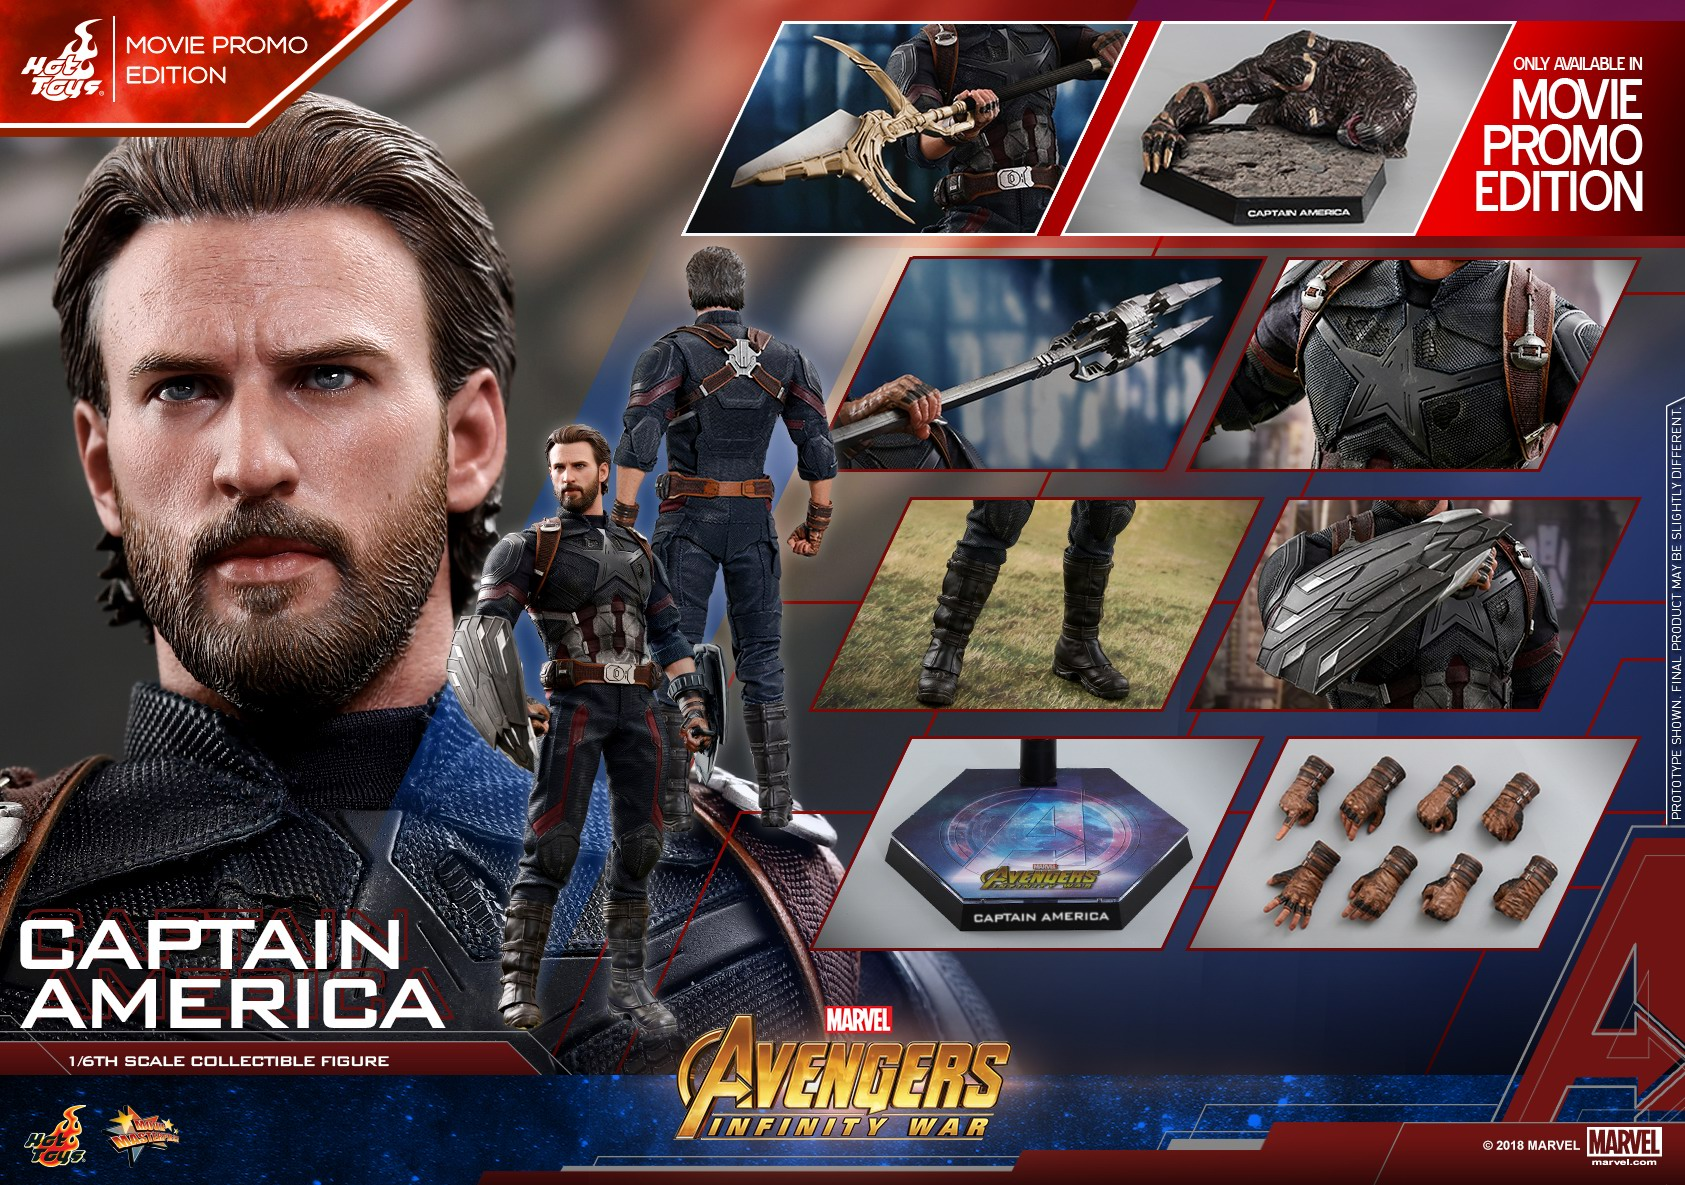 Hot-Toys-AIW-Captain-America-collectible-figure-Movie-Promo_Mystery-Weapon-PR03.jpg